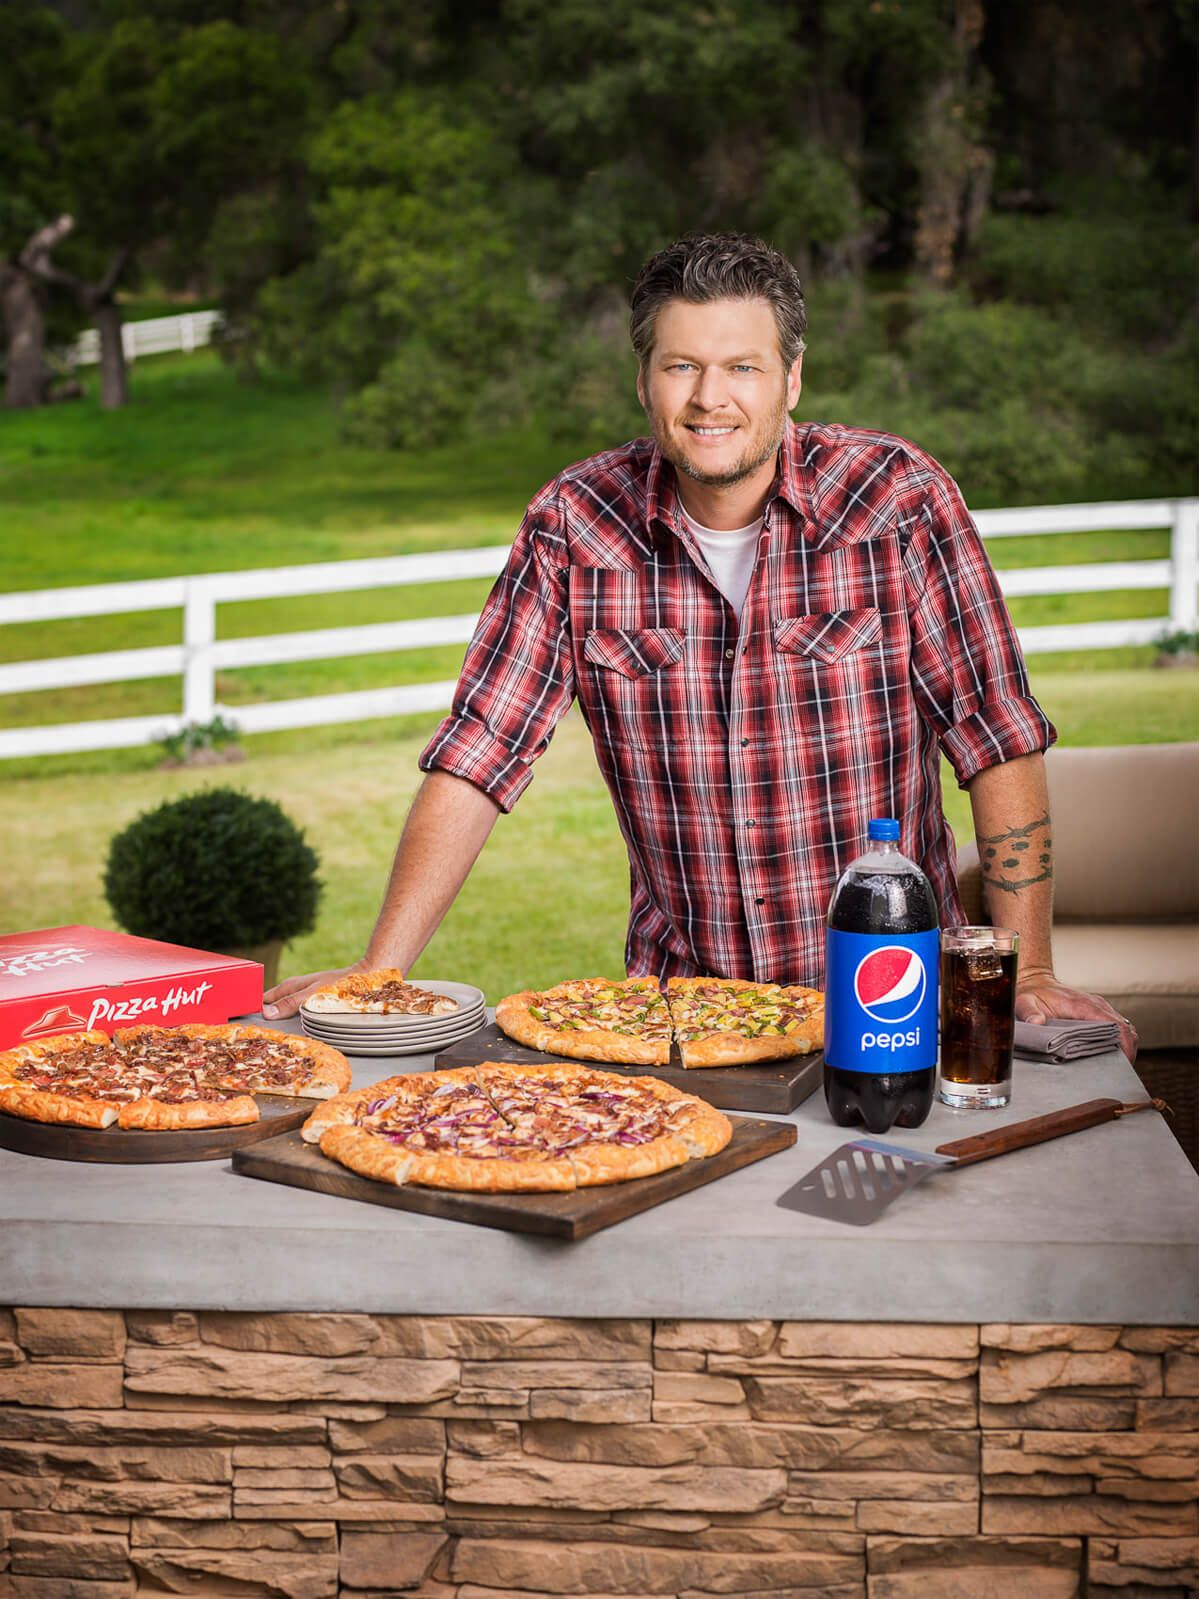 Blake Shelton Pizza Hut Smokehouse BBQ.jpg